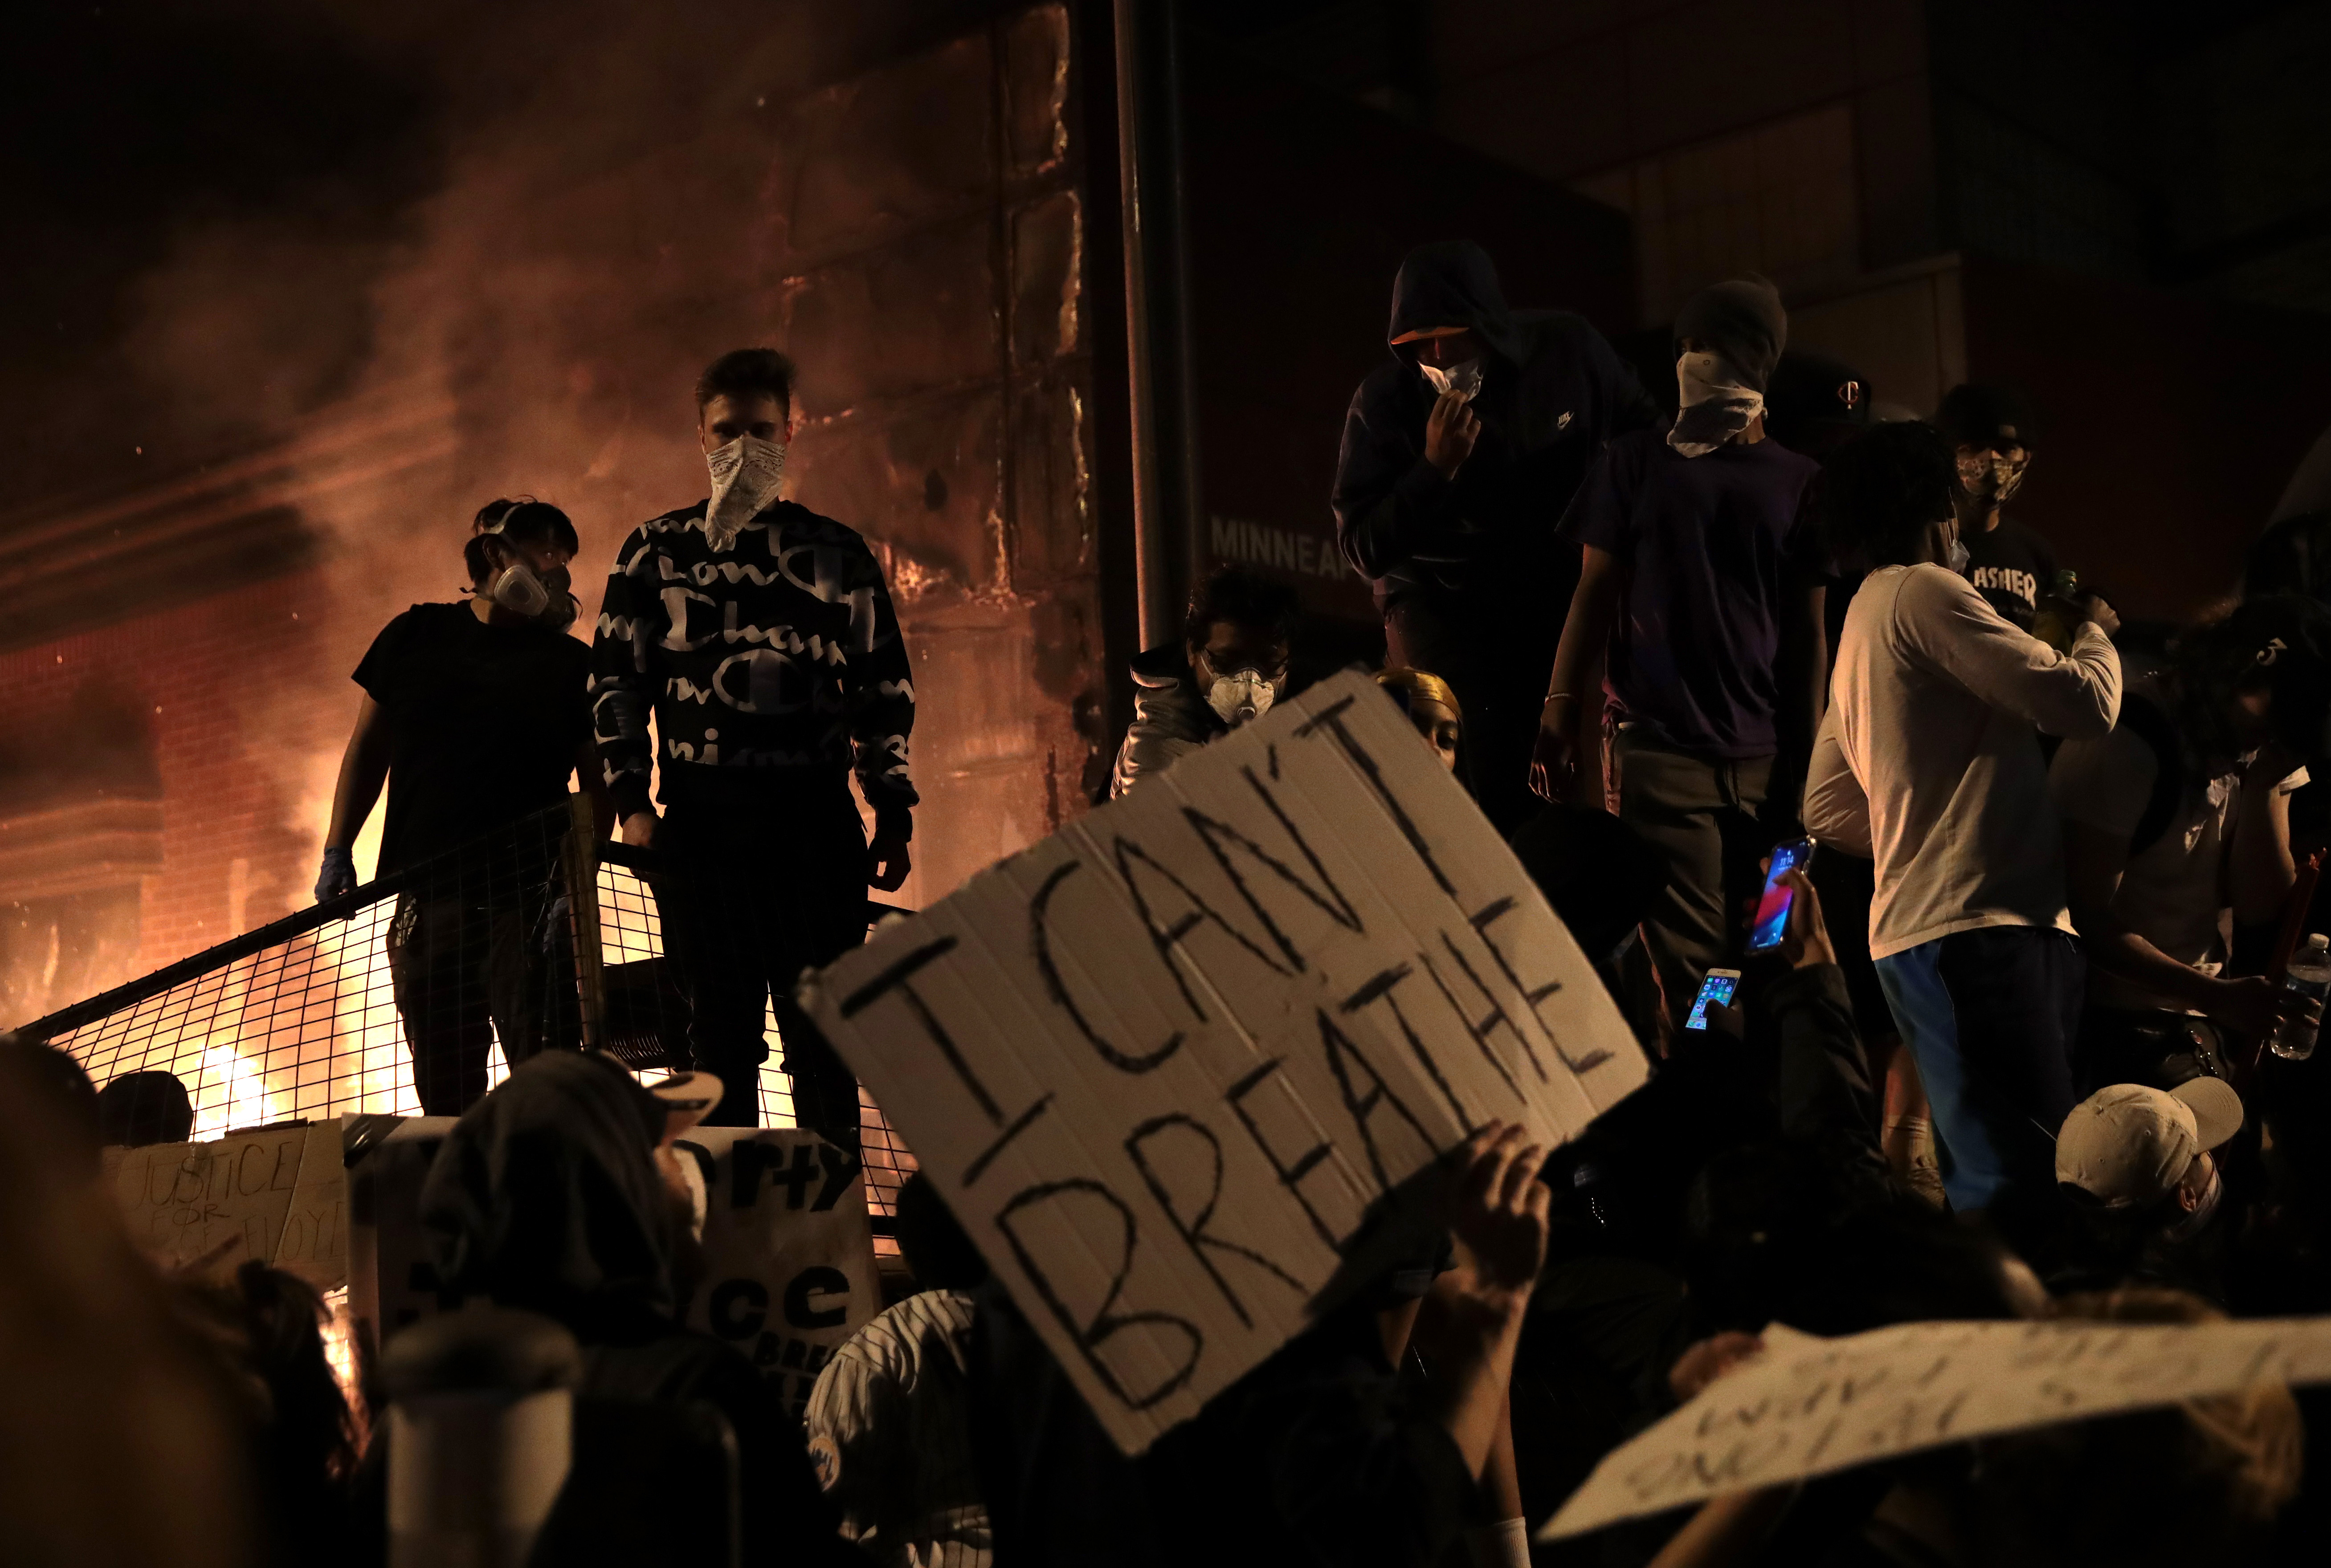 "Protesters stand in front of the 3rd precinct police building as it burns during a protest on May 28, 2020 in Minneapolis, Minnesota. Today marks the third day of ongoing protests after the police killing of George Floyd. Four Minneapolis police officers have been fired after a video taken by a bystander was posted on social media showing Floyd's neck being pinned to the ground by an officer as he repeatedly said, ""I can't breathe"". Floyd was later pronounced dead while in police custody after being transported to Hennepin County Medical Center. (Photo by Scott Olson/Getty Images)"